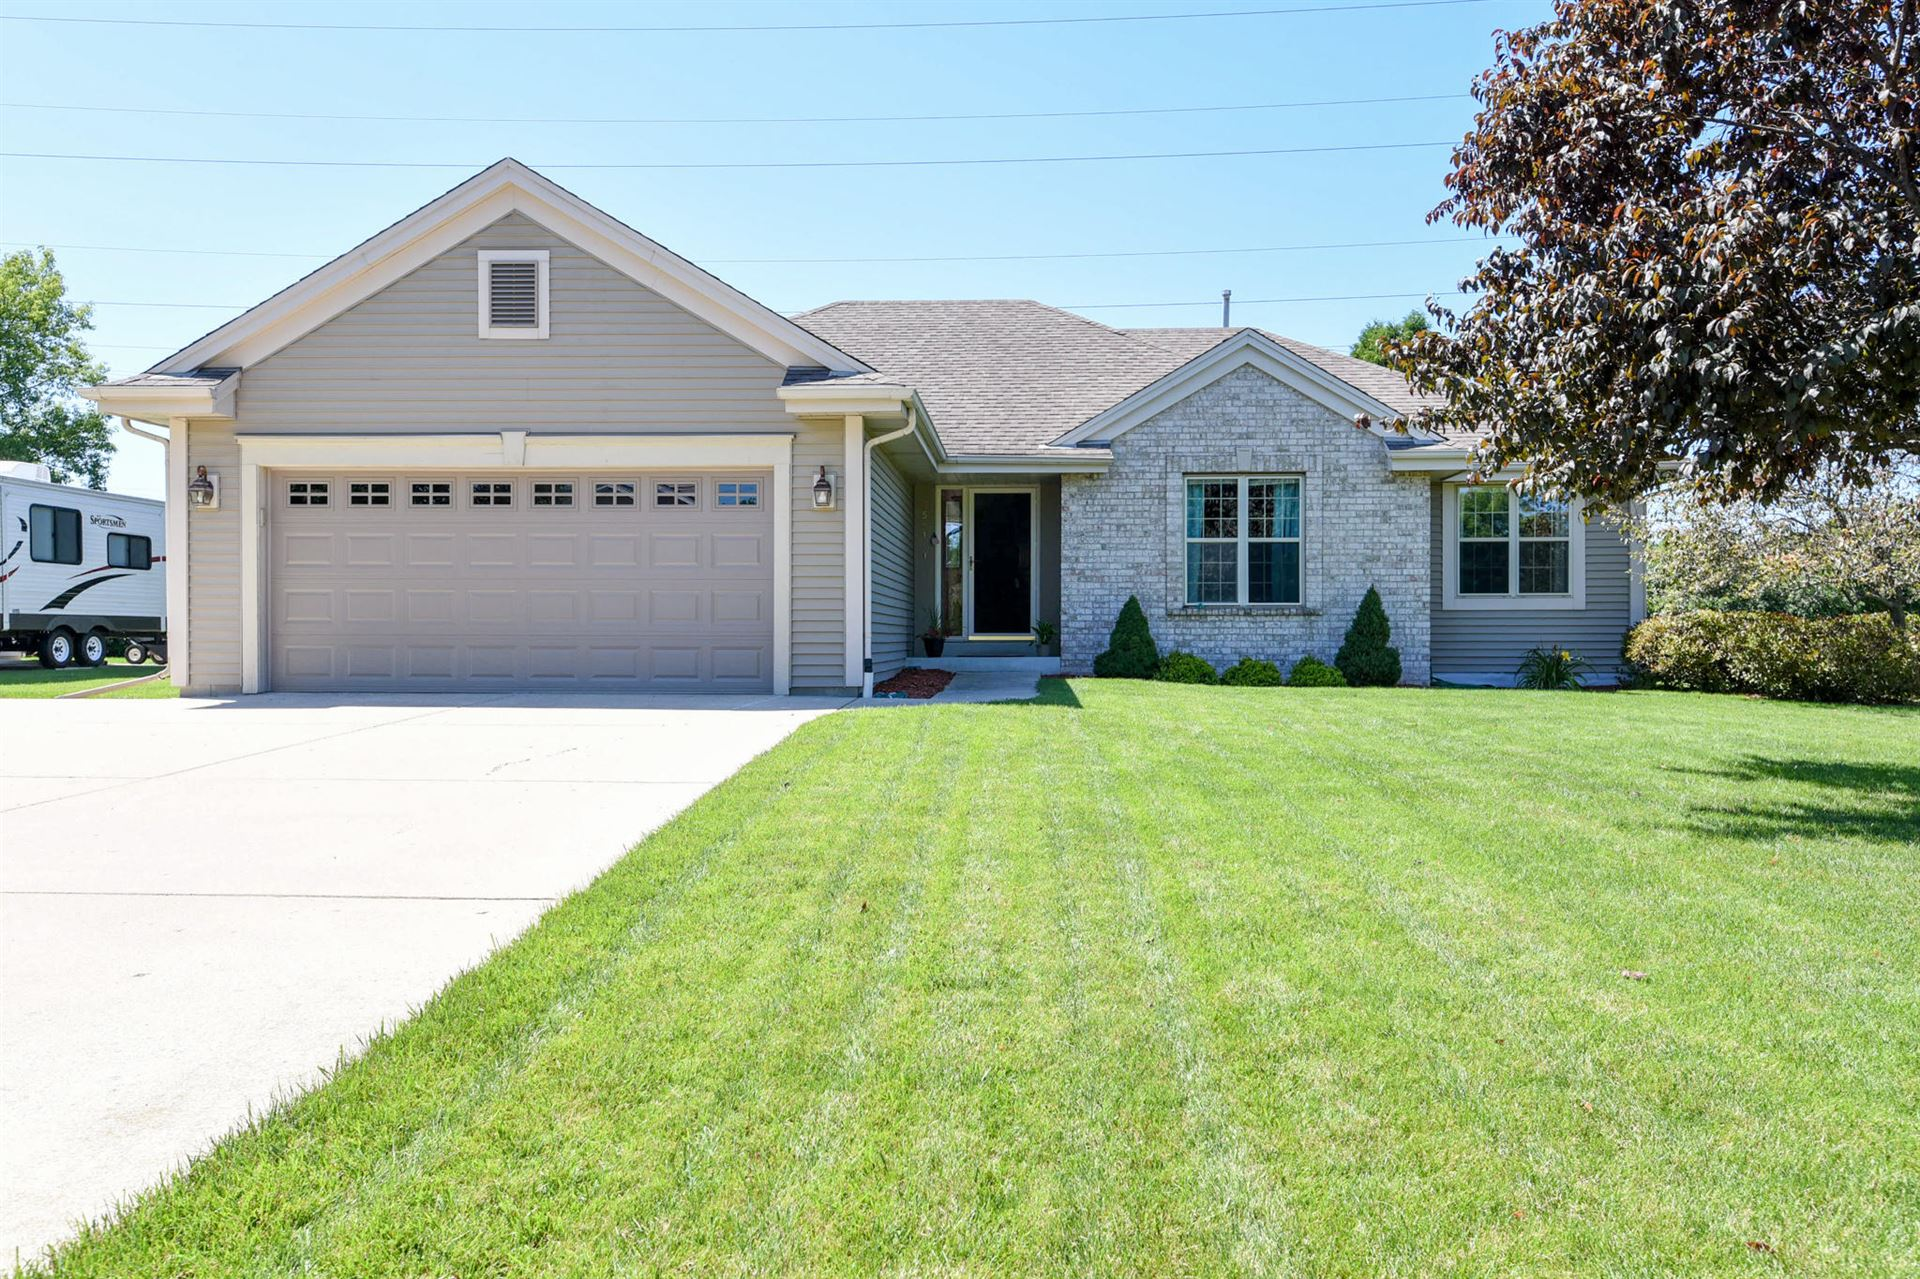 7561 S Pacific St, Franklin, WI 53132 - #: 1703271